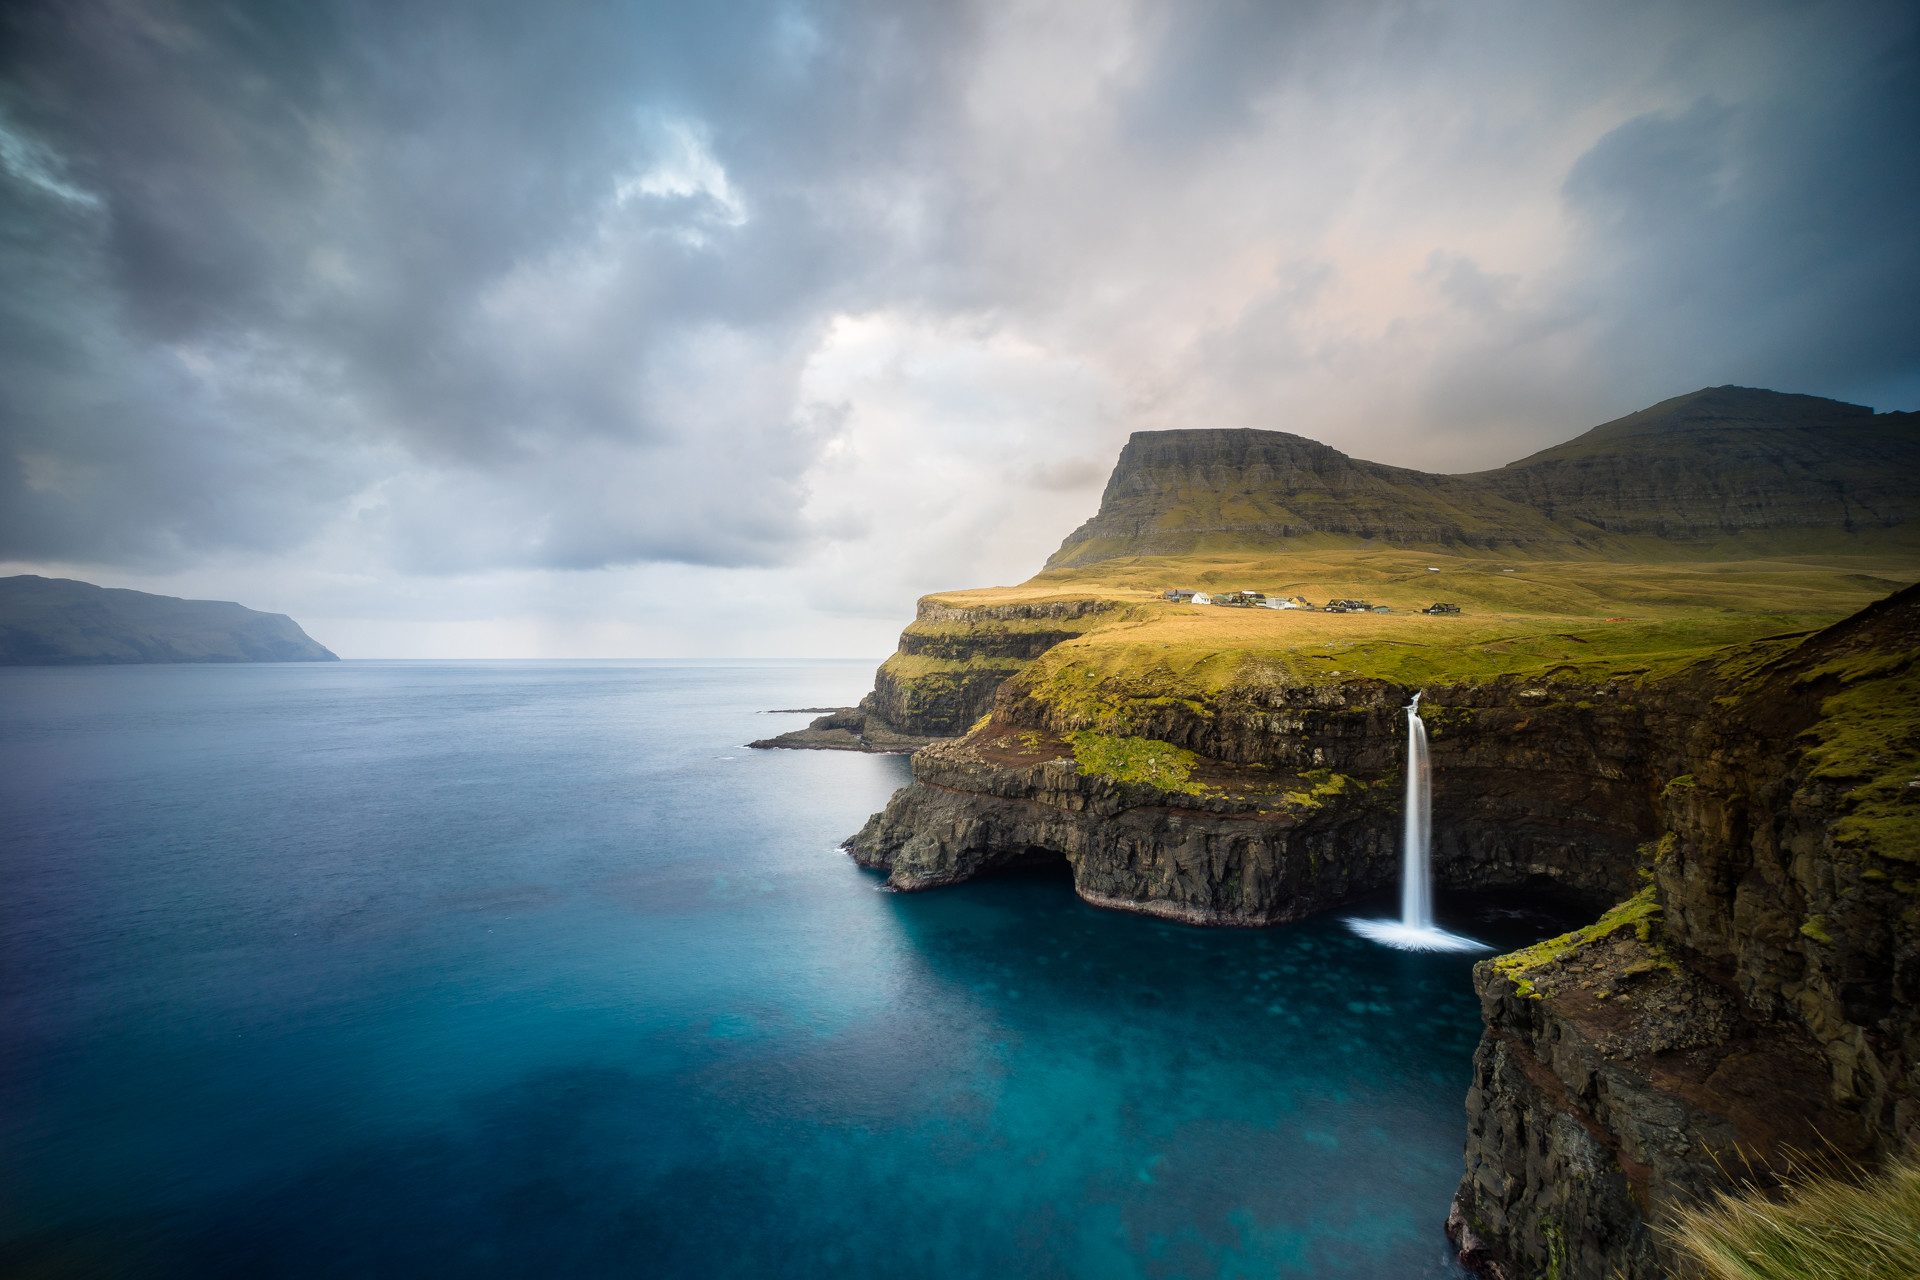 Chris Burkard WallpaperSee All See All